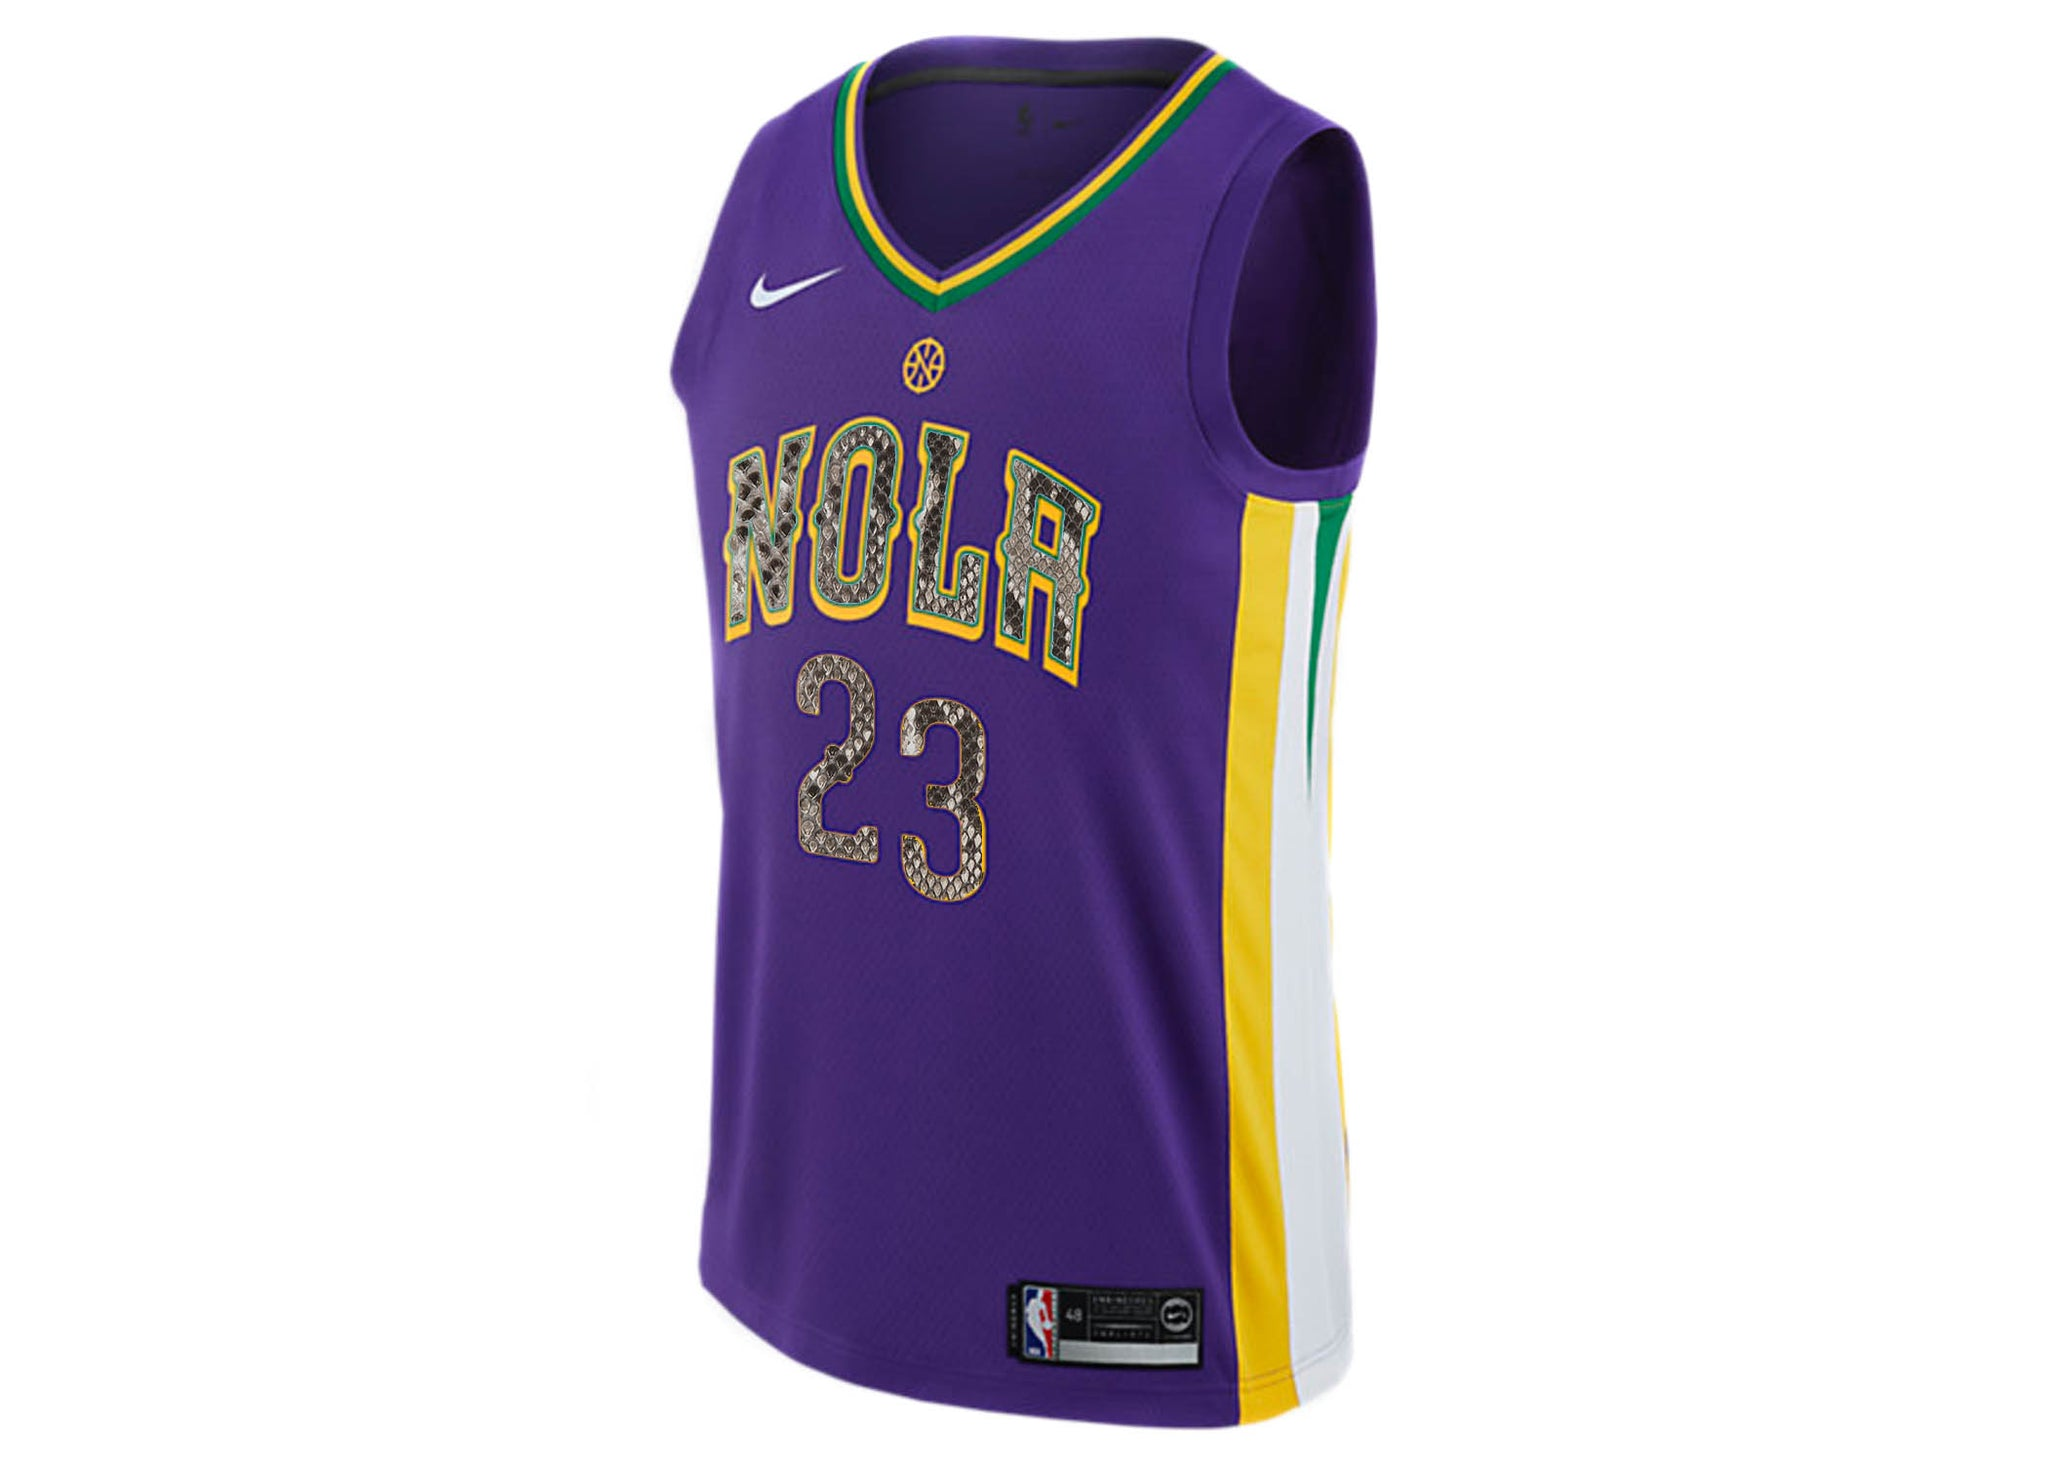 new orleans pelicans city jersey